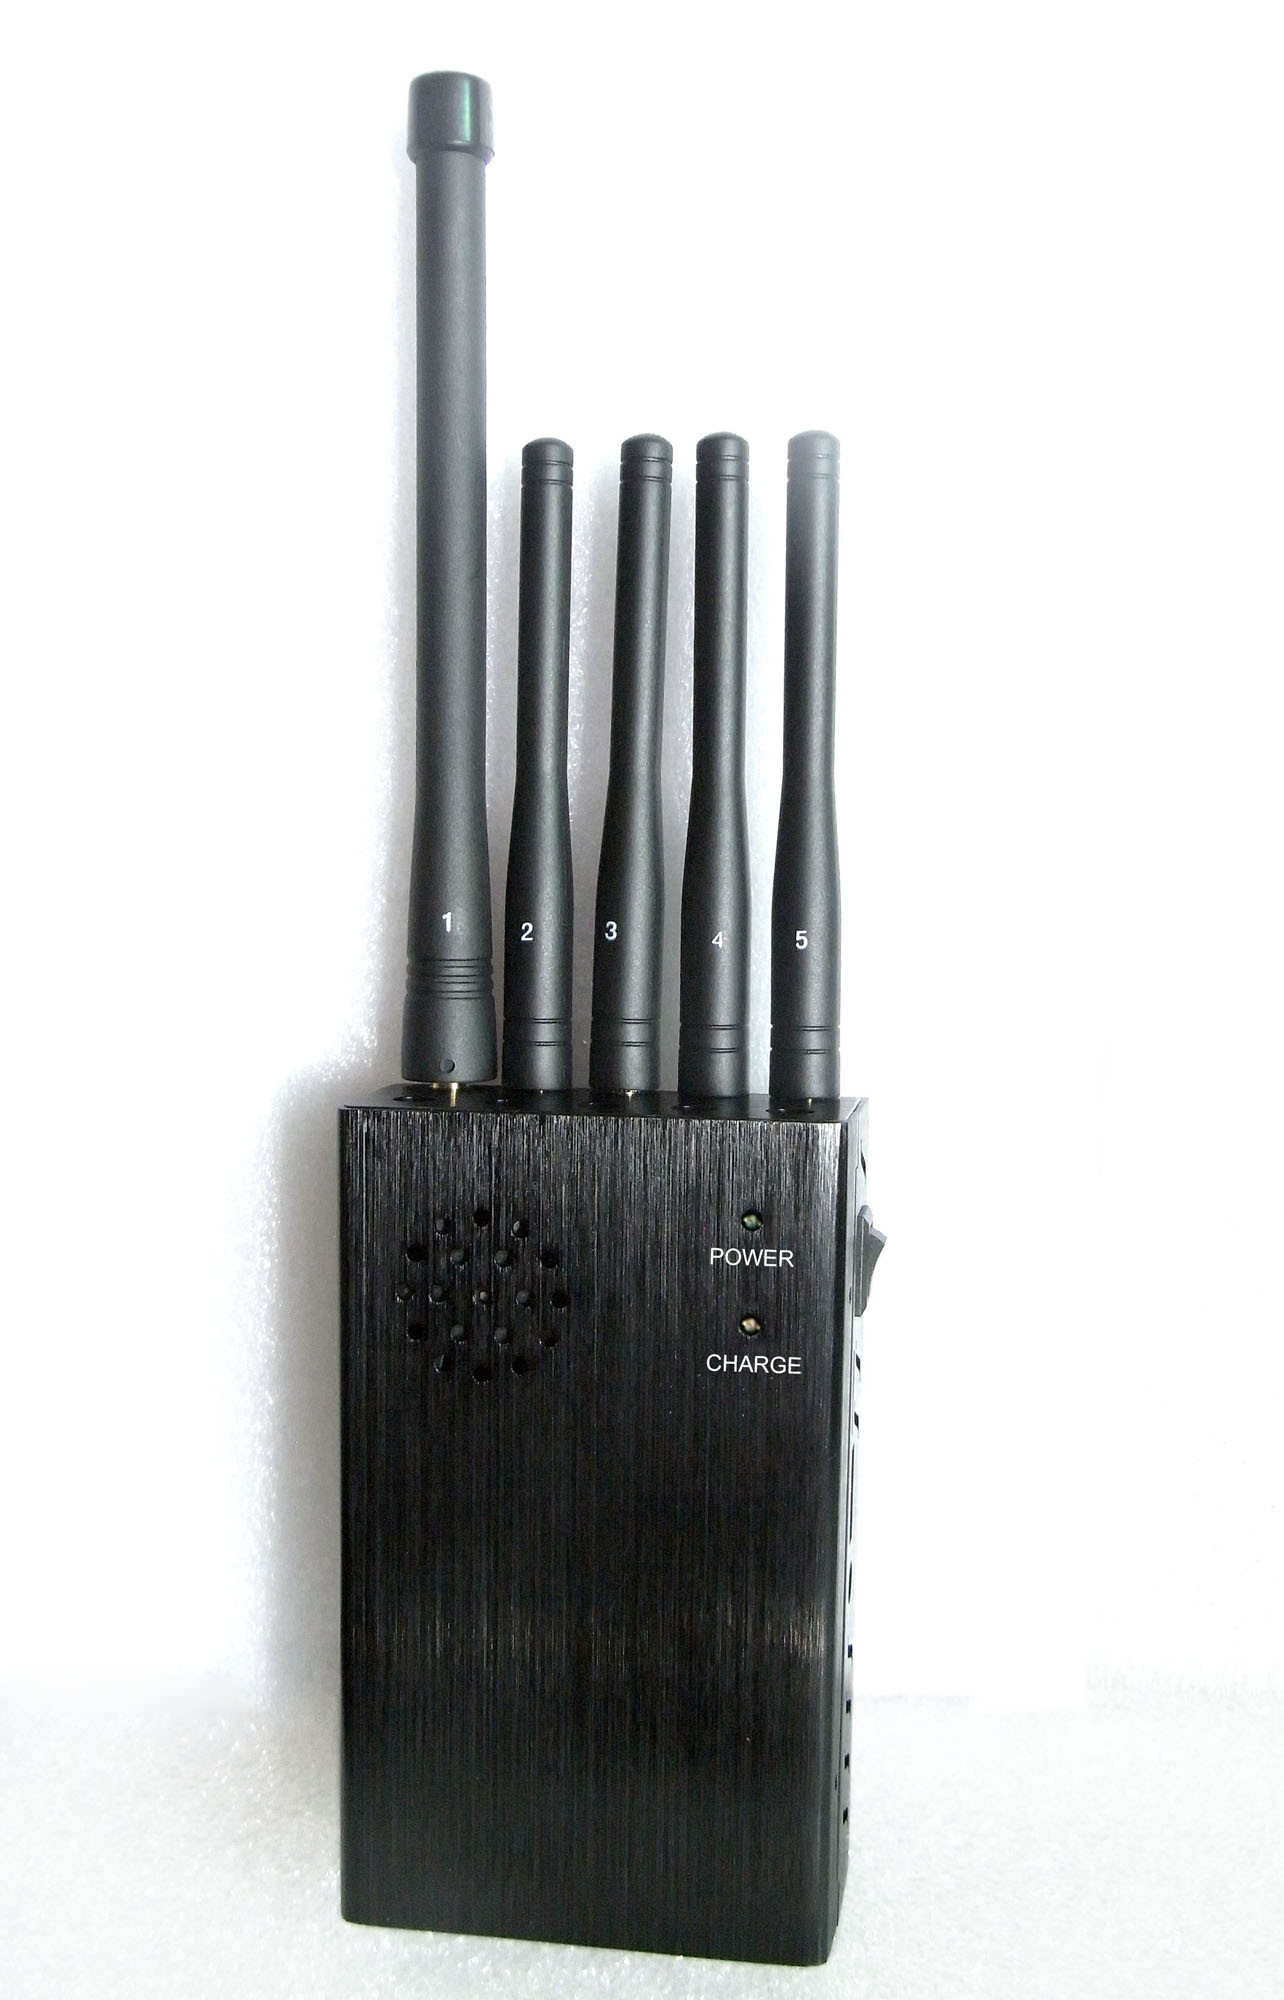 boutooth signal blocker ymca - China New Handheld 5 Bands 4G Lte 4G Wimax Cell Phone Jammer 4G Jammer 3G Jammer, 5 Antennas Phone Jammer for GSM, CDMA, 3G, 4glte - China 5 Band Signal Blockers, Five Antennas Jammers